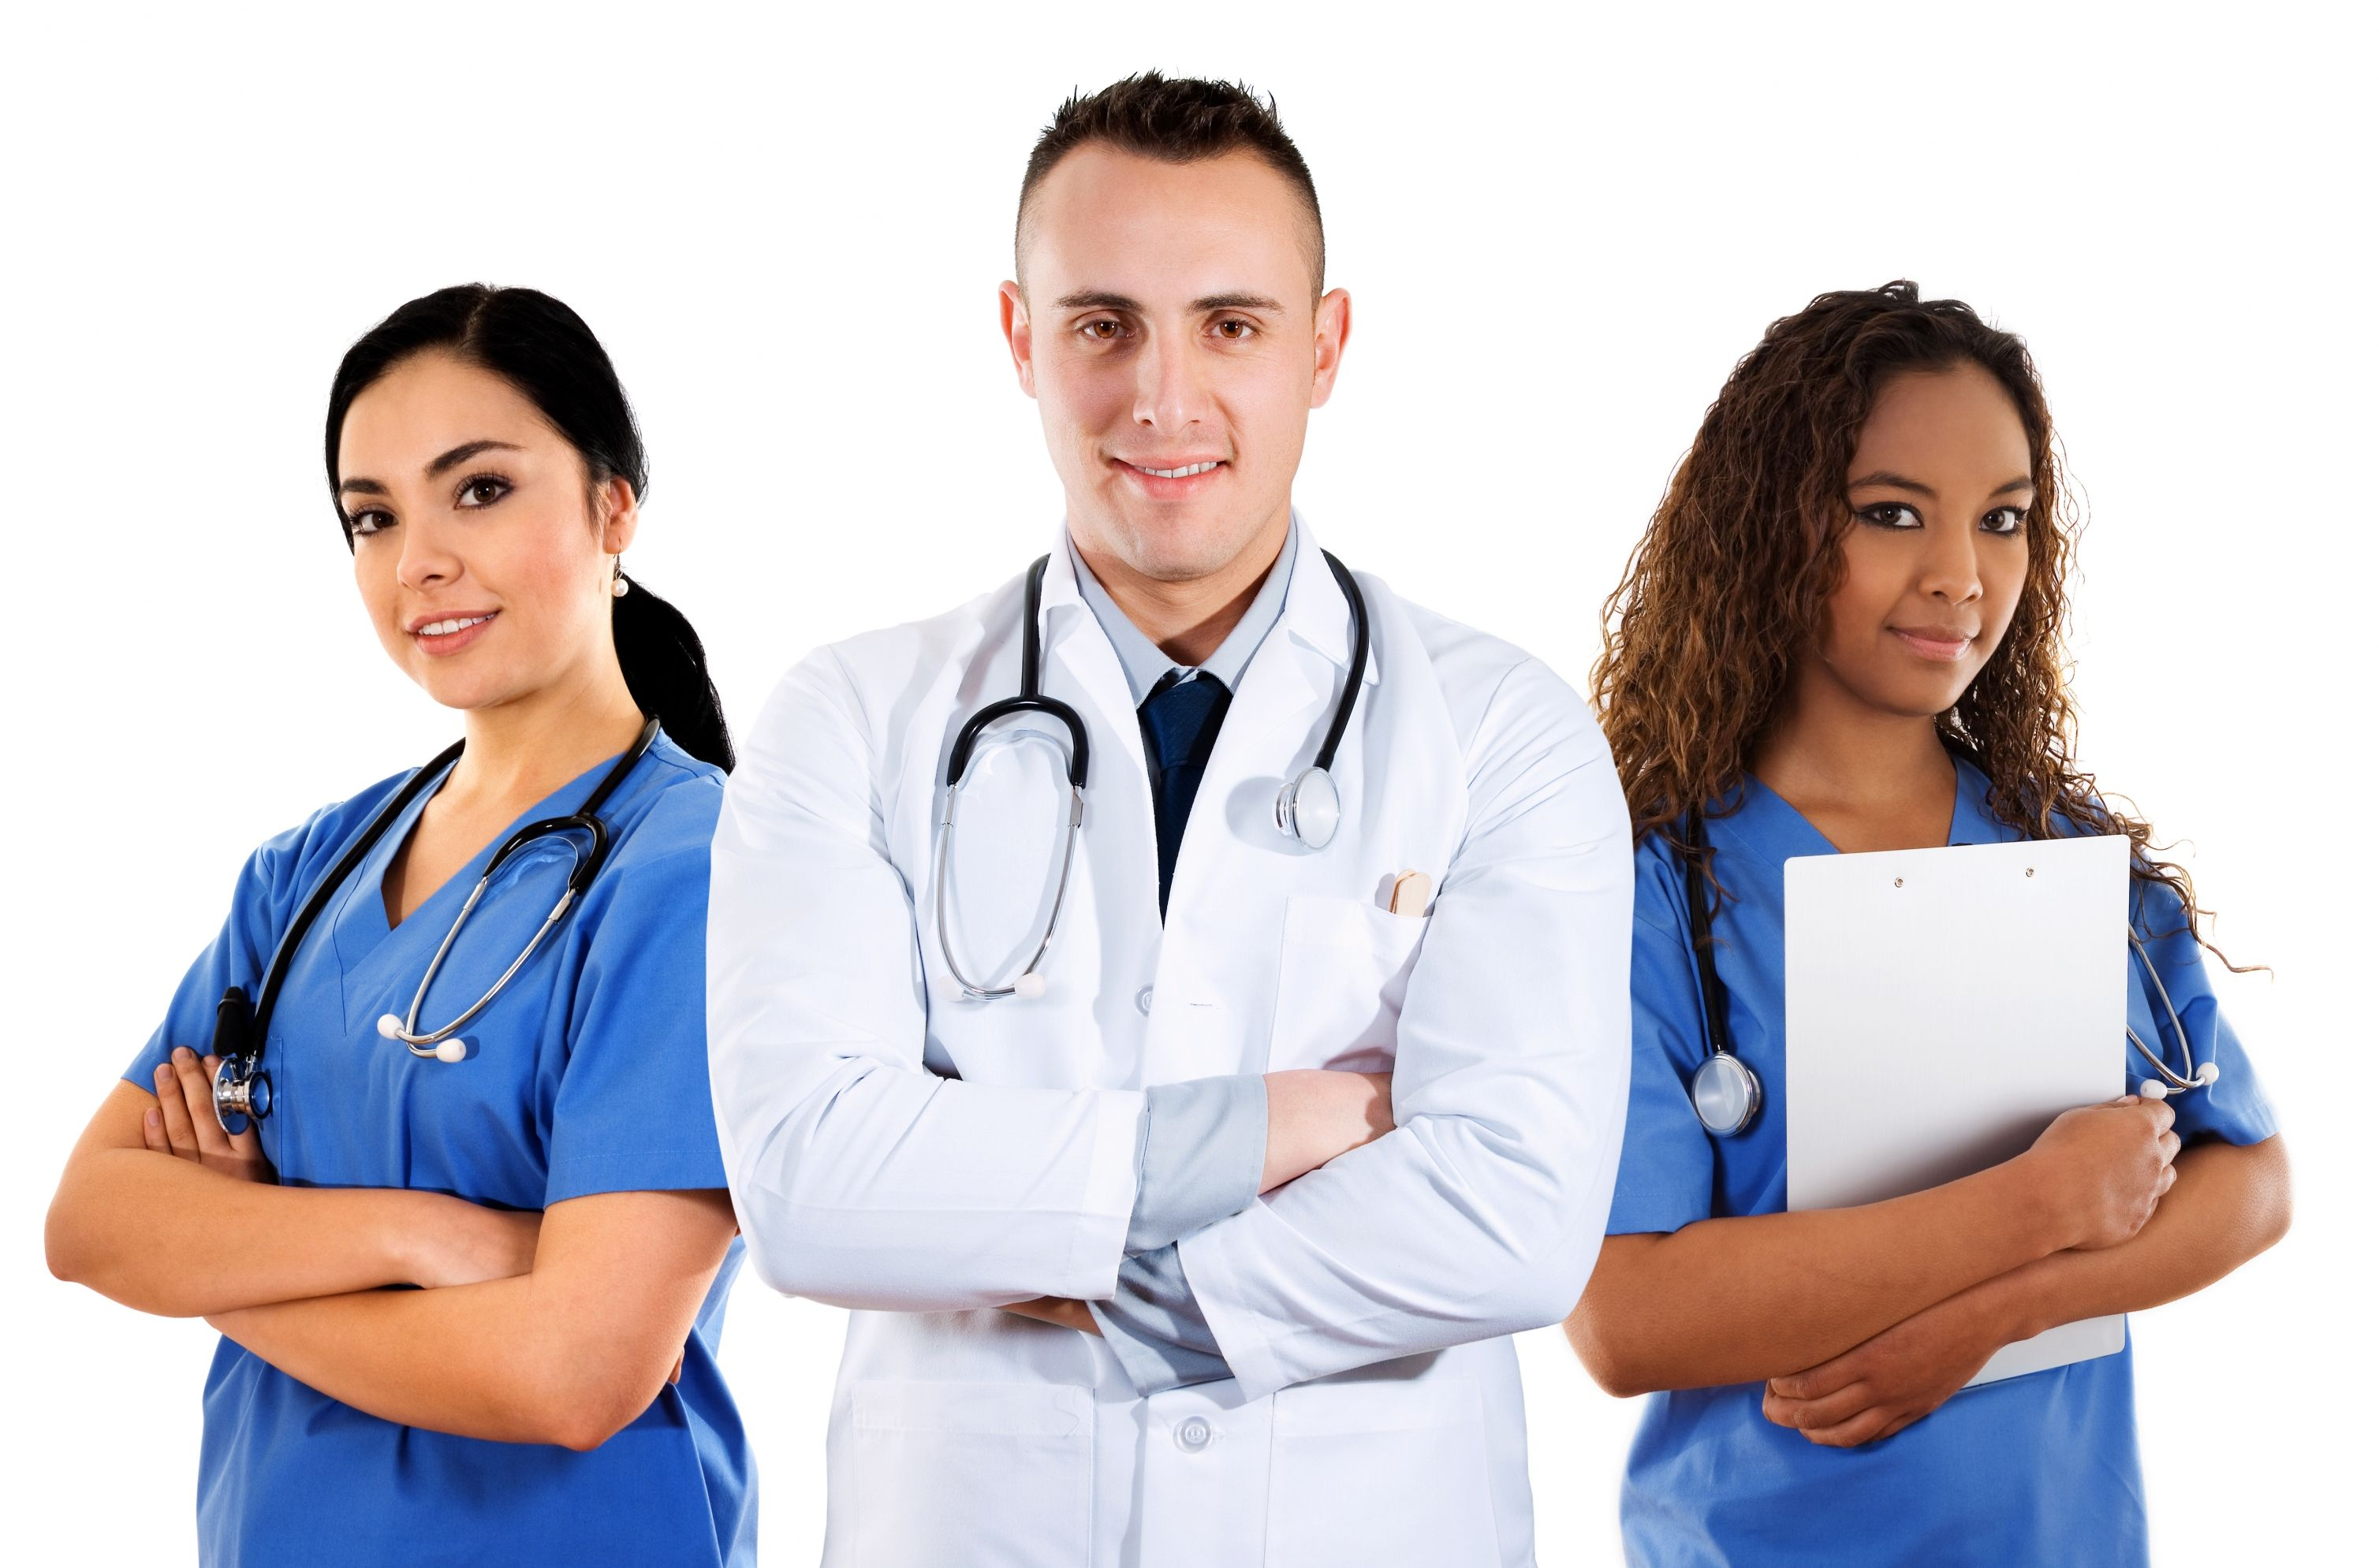 Five interesting facts about phlebotomy medical